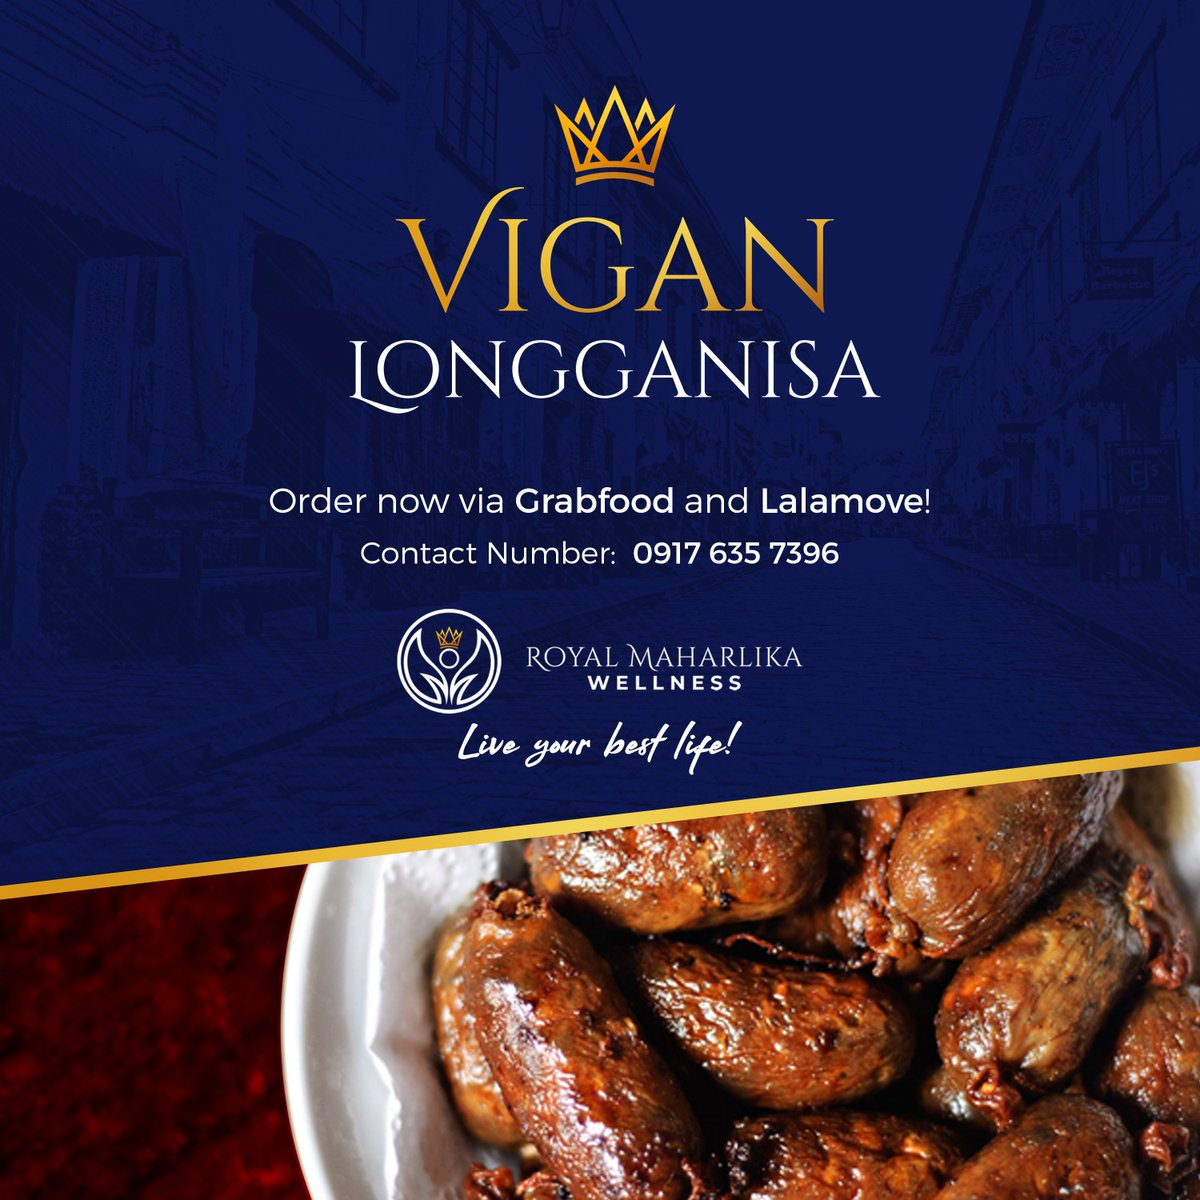 Under the GCQ, most people are still not allowed to go out. Stay home while having the classic Pinoy comfort food Vigan Longganisa! Hit us up for your orders and we'll deliver it to you.  #RoyalMaharlika #Liveyourbestlife #flattenthecurve  #beatCOVID #stayathome https://t.co/J7zKFnixO1